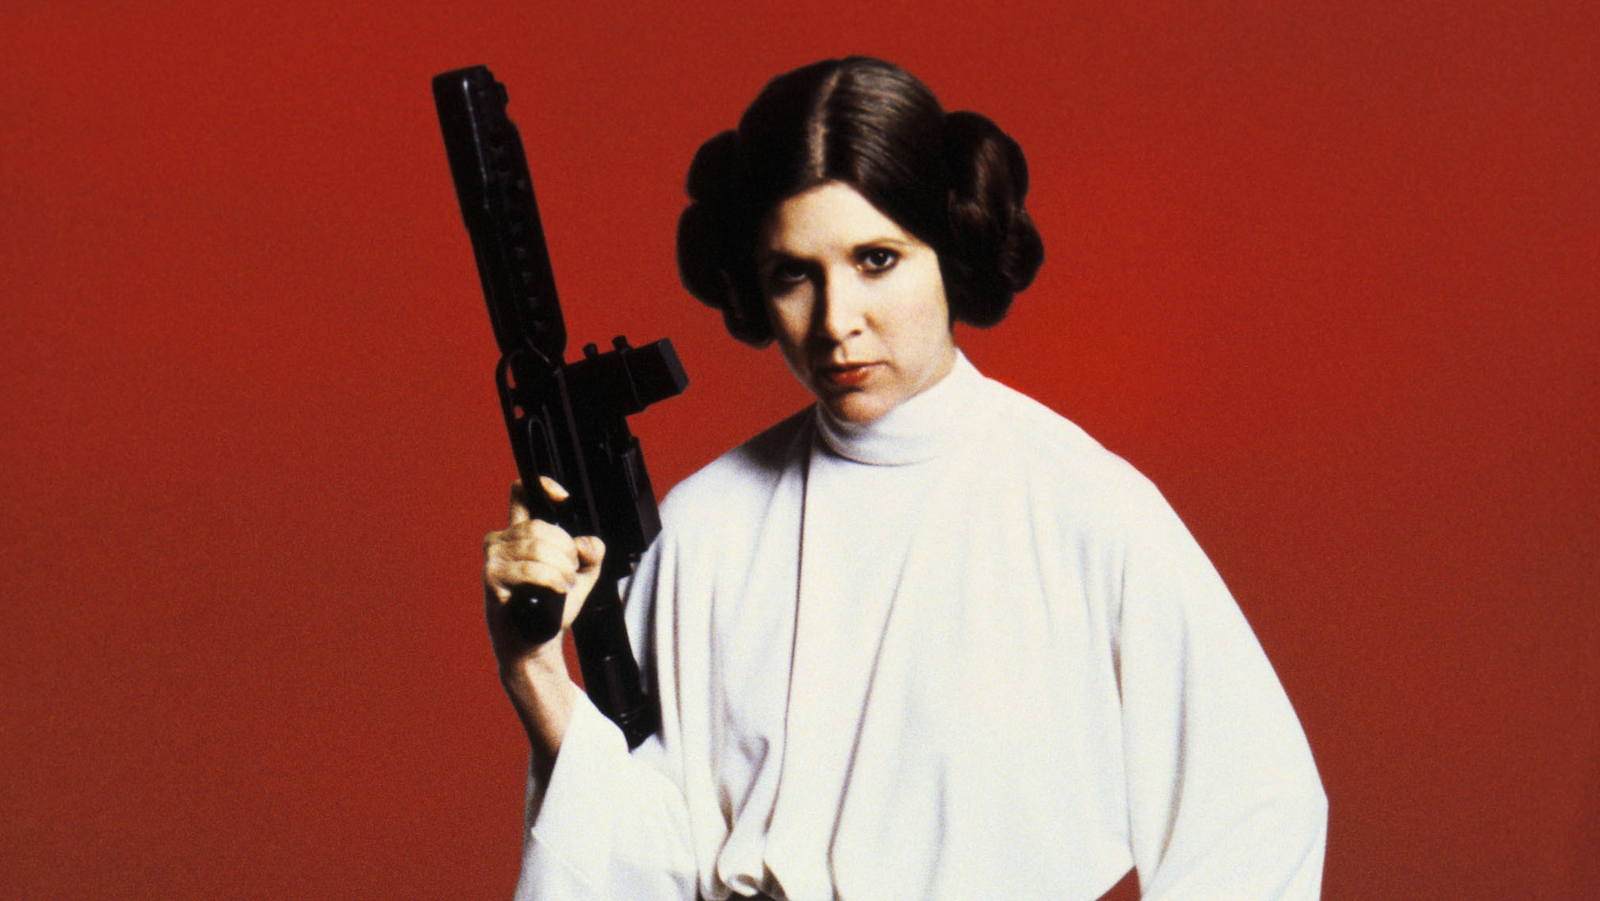 Carrie Fisher as Princess Leia Organa Star Wars (1977) *Filmstill - Editorial Use Only* CAP/PLF/MediaPunch/IPX